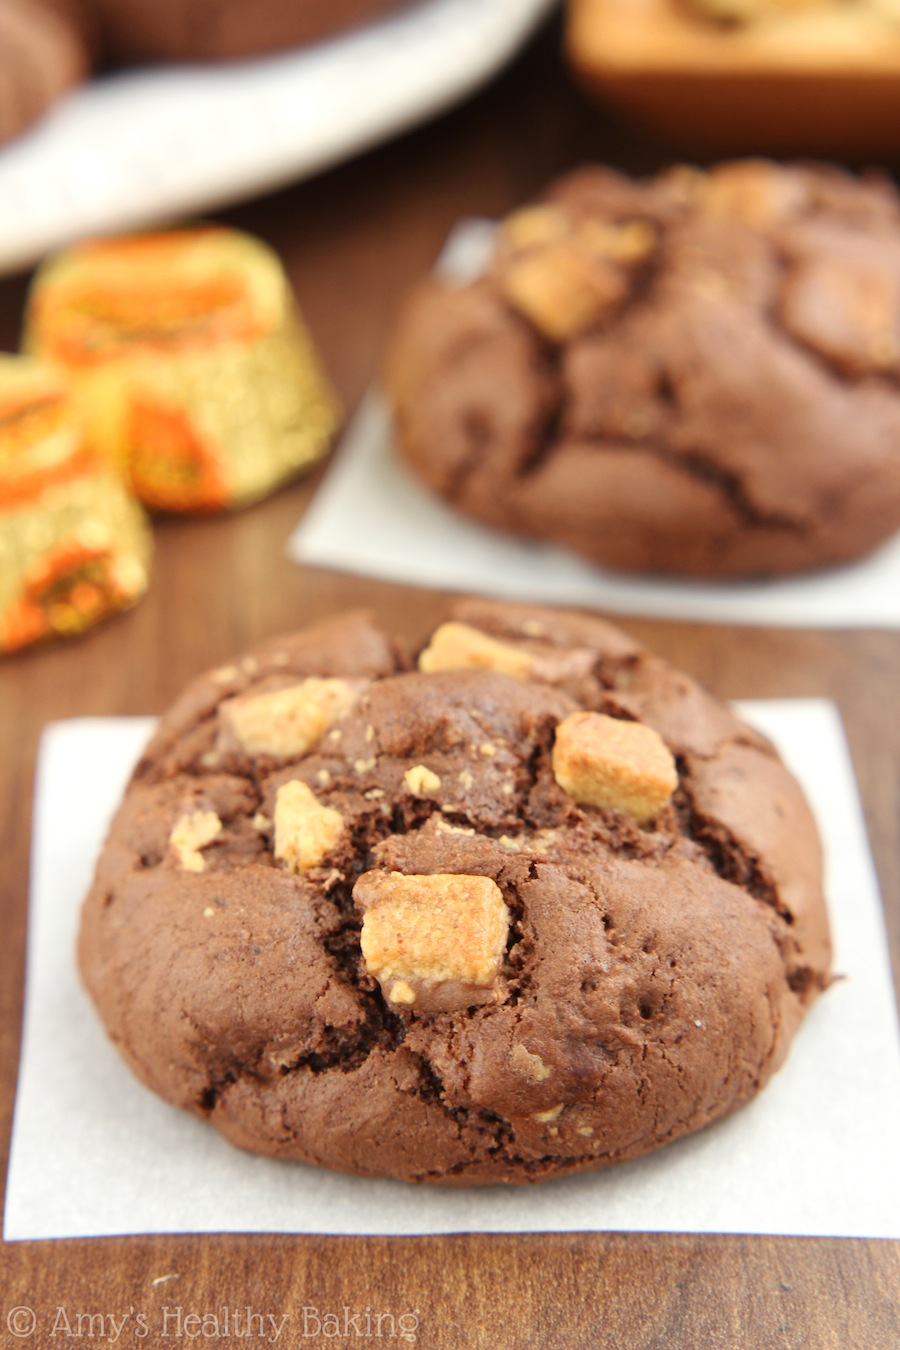 Peanut Butter Cup Chocolate Cookies | Amy's Healthy Baking